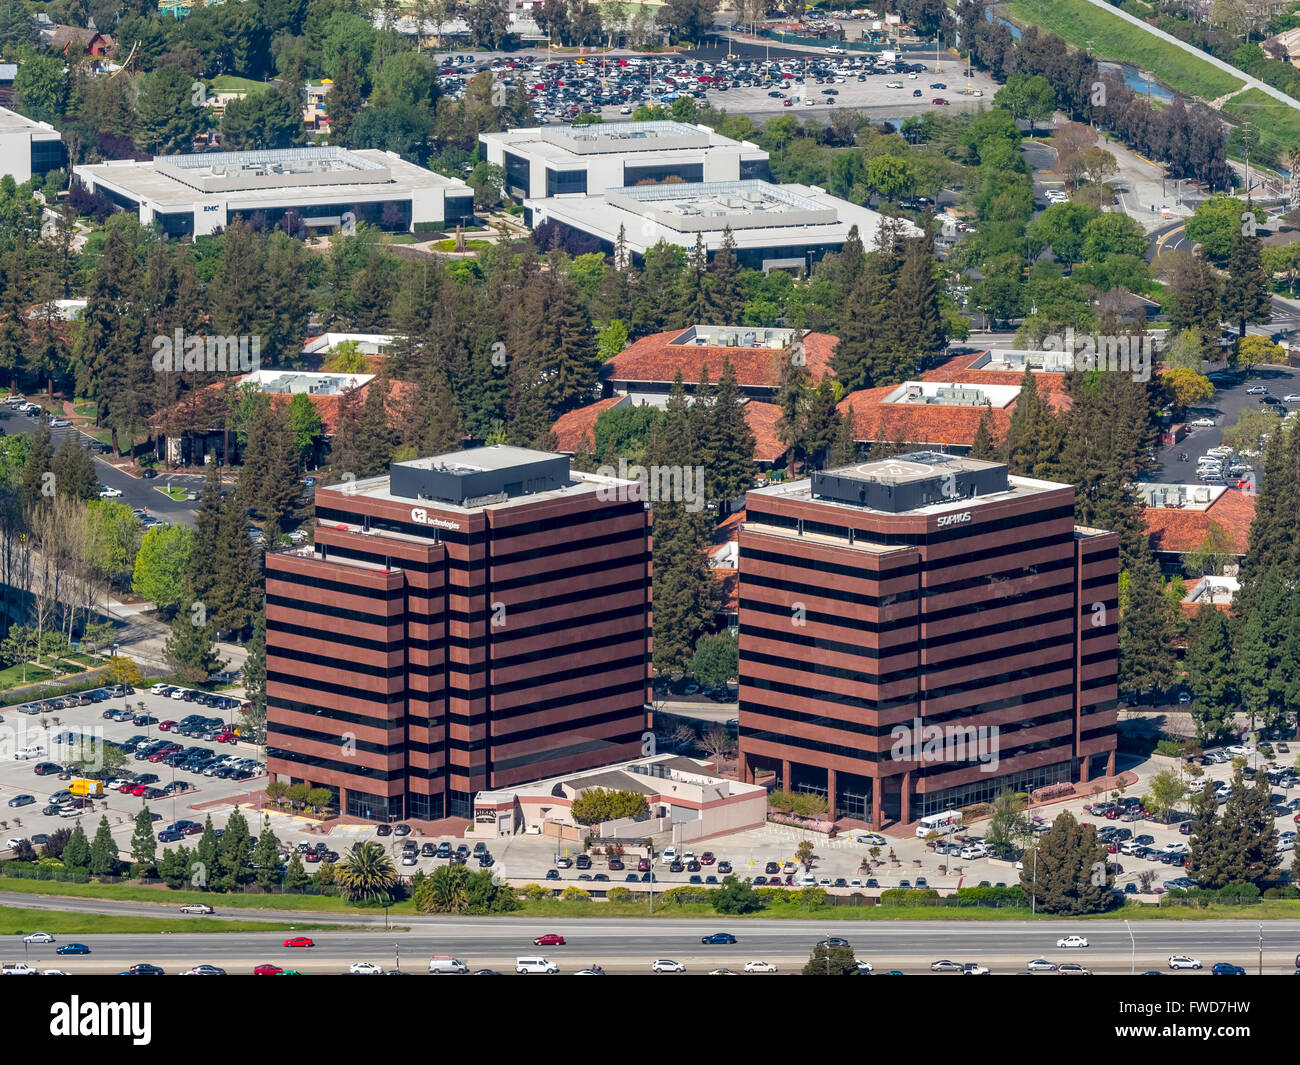 Vishay Americas inc. Broadcom ca technologies, Sophos, Silicon Valley, California, Santa Clara Silicon Valley California - Stock Image